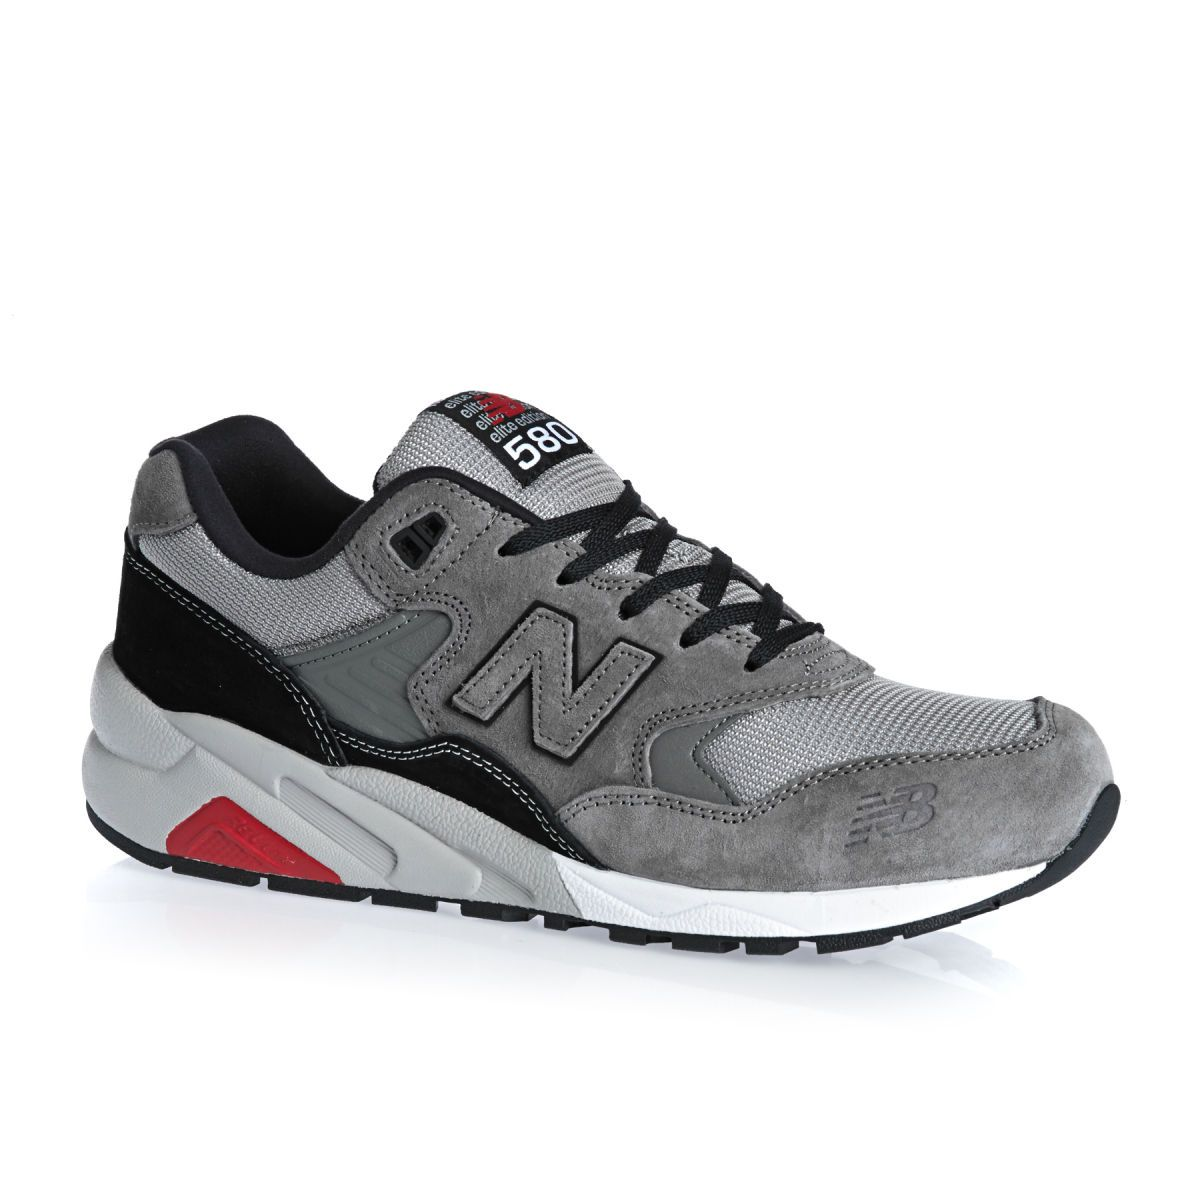 New Balance 580 Trainers Sport shoes men, Sports shoes